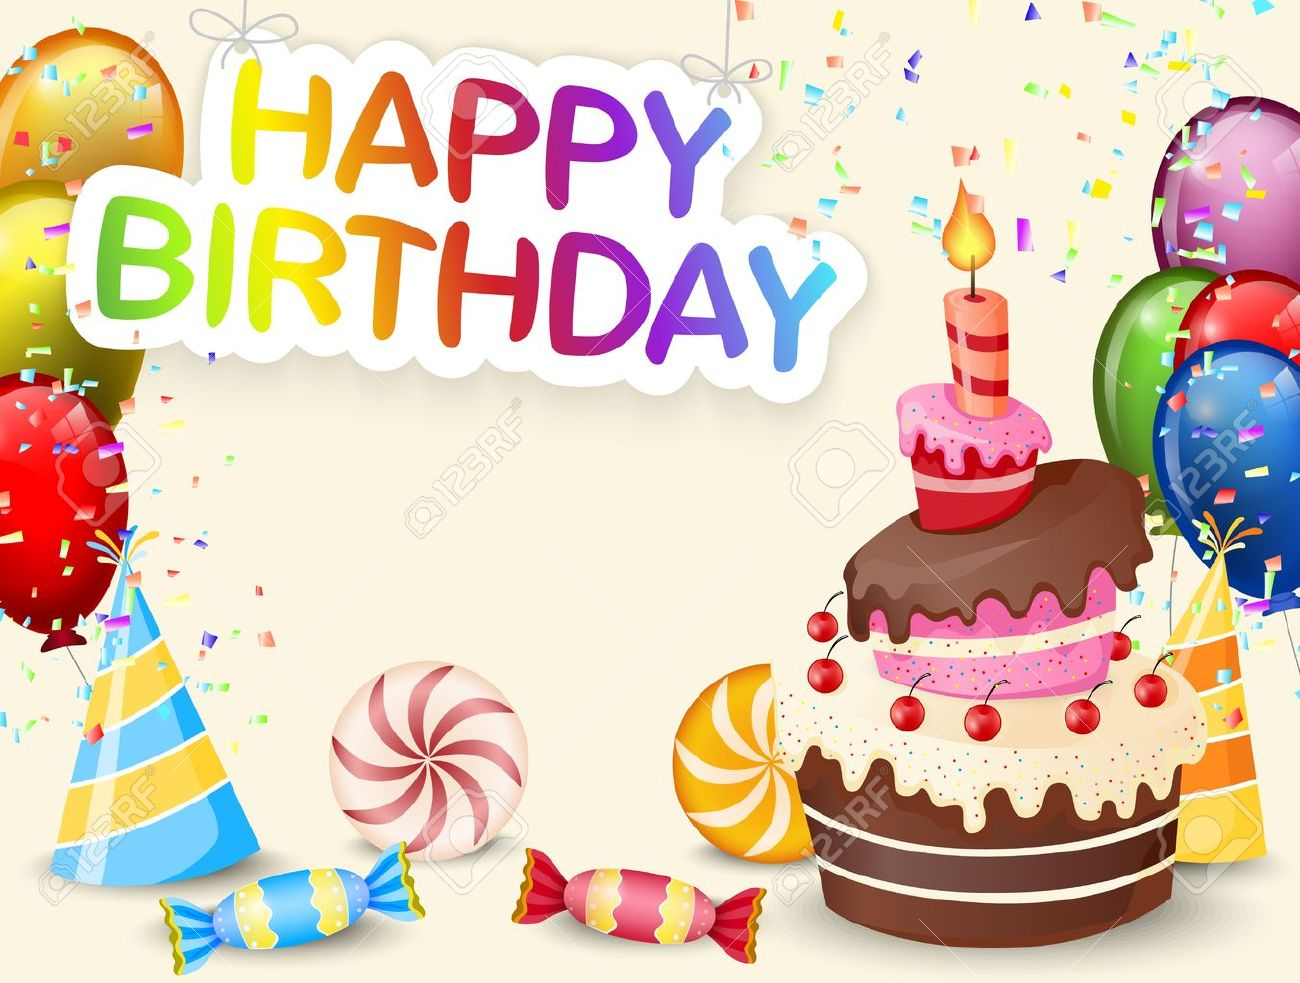 Birthday Background With Birthday Cake Cartoon Royalty Free Cliparts Vectors And Stock Illustration Image 35858776